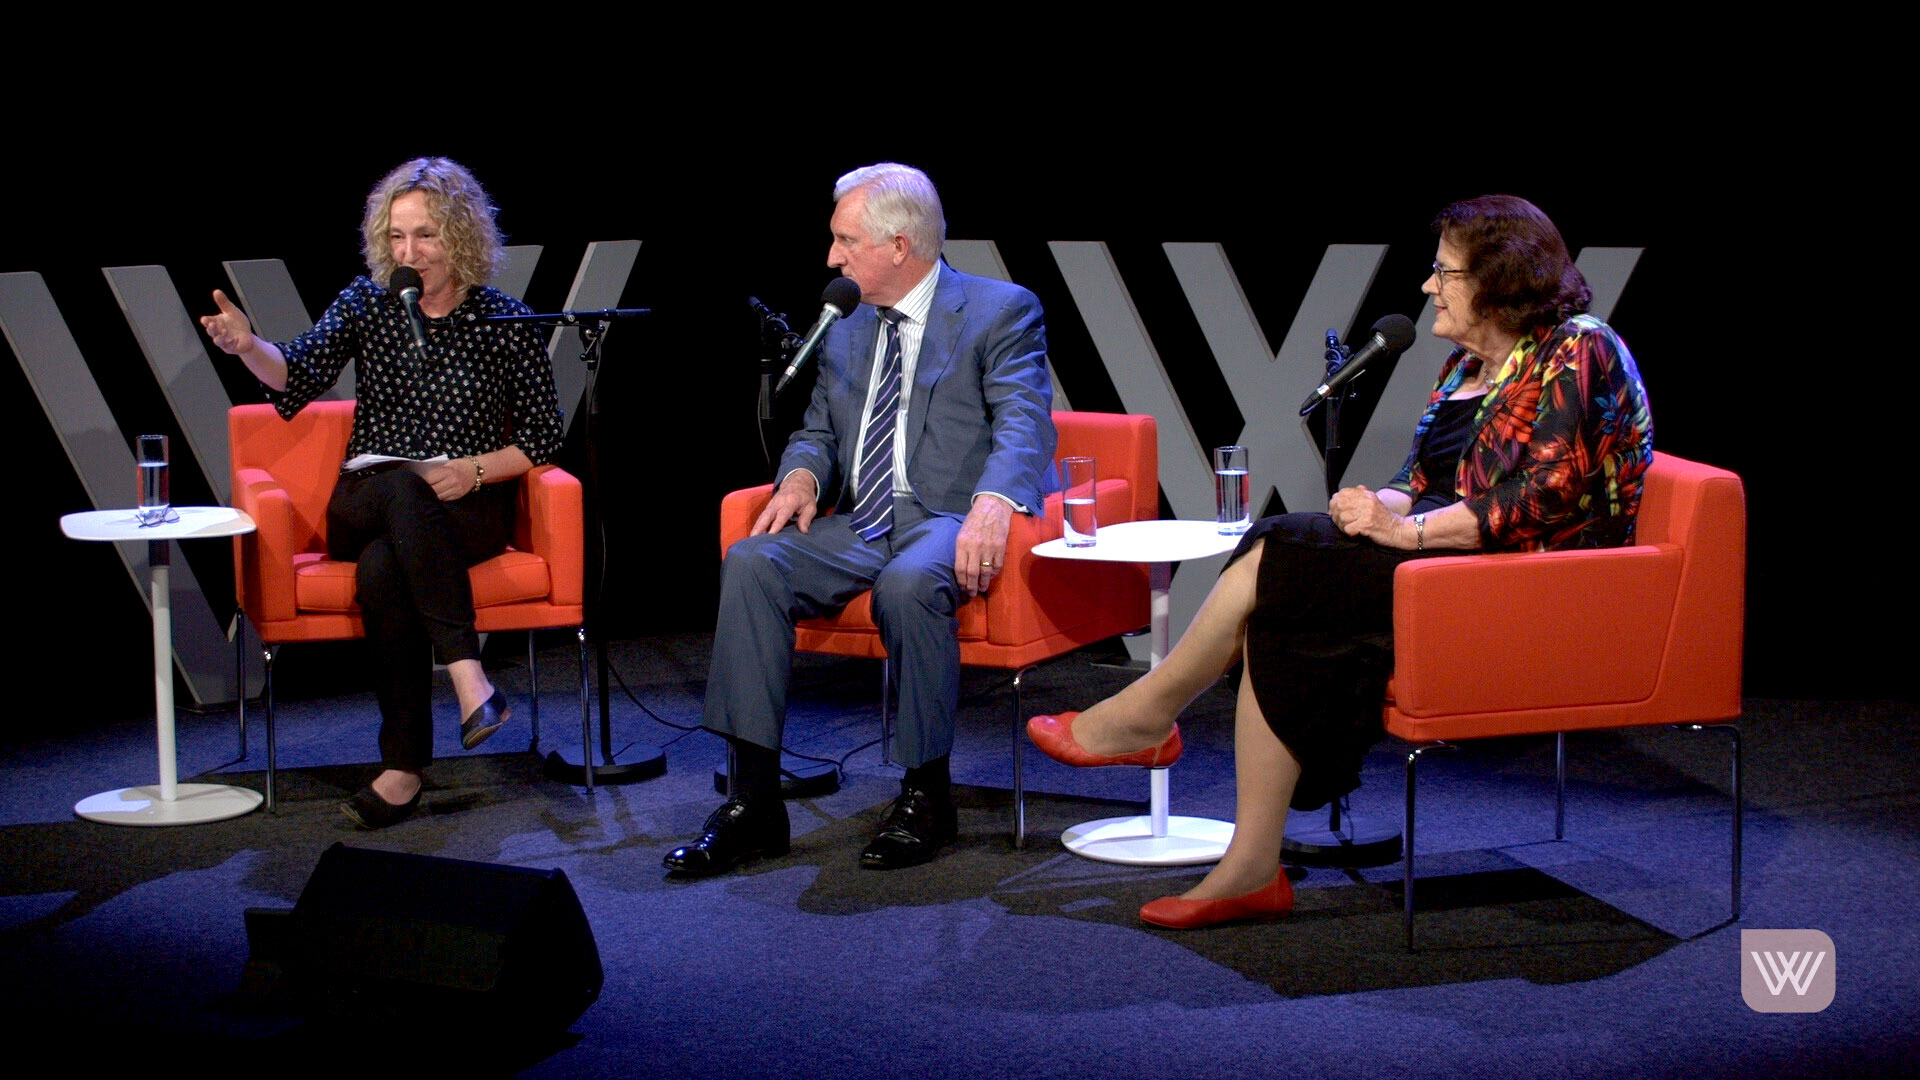 Photo of Sally Warhaft (speaking into her microphone), John Hewson and Michelle Grattan - on a grey stage, sitting on red armchairs